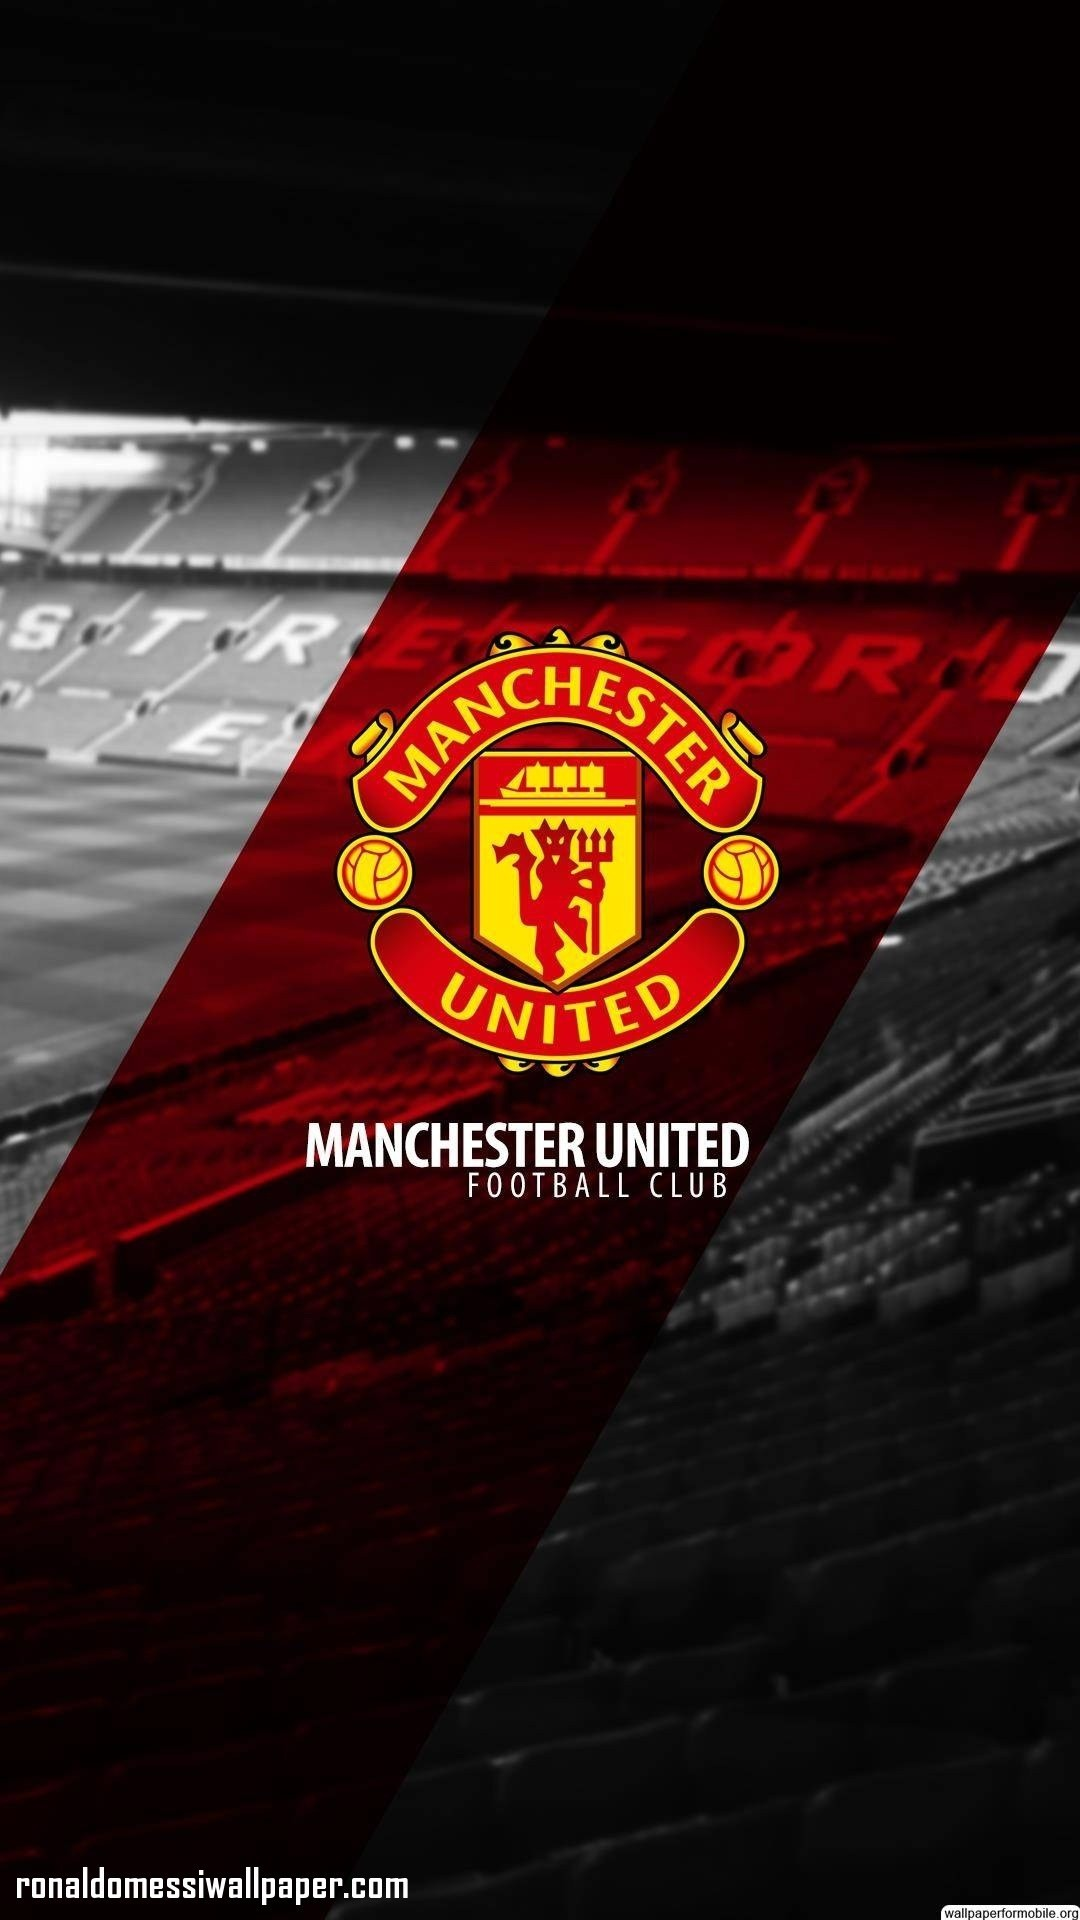 Manchester united wallpaper 3d 2018 62 images - Cool man united wallpapers ...